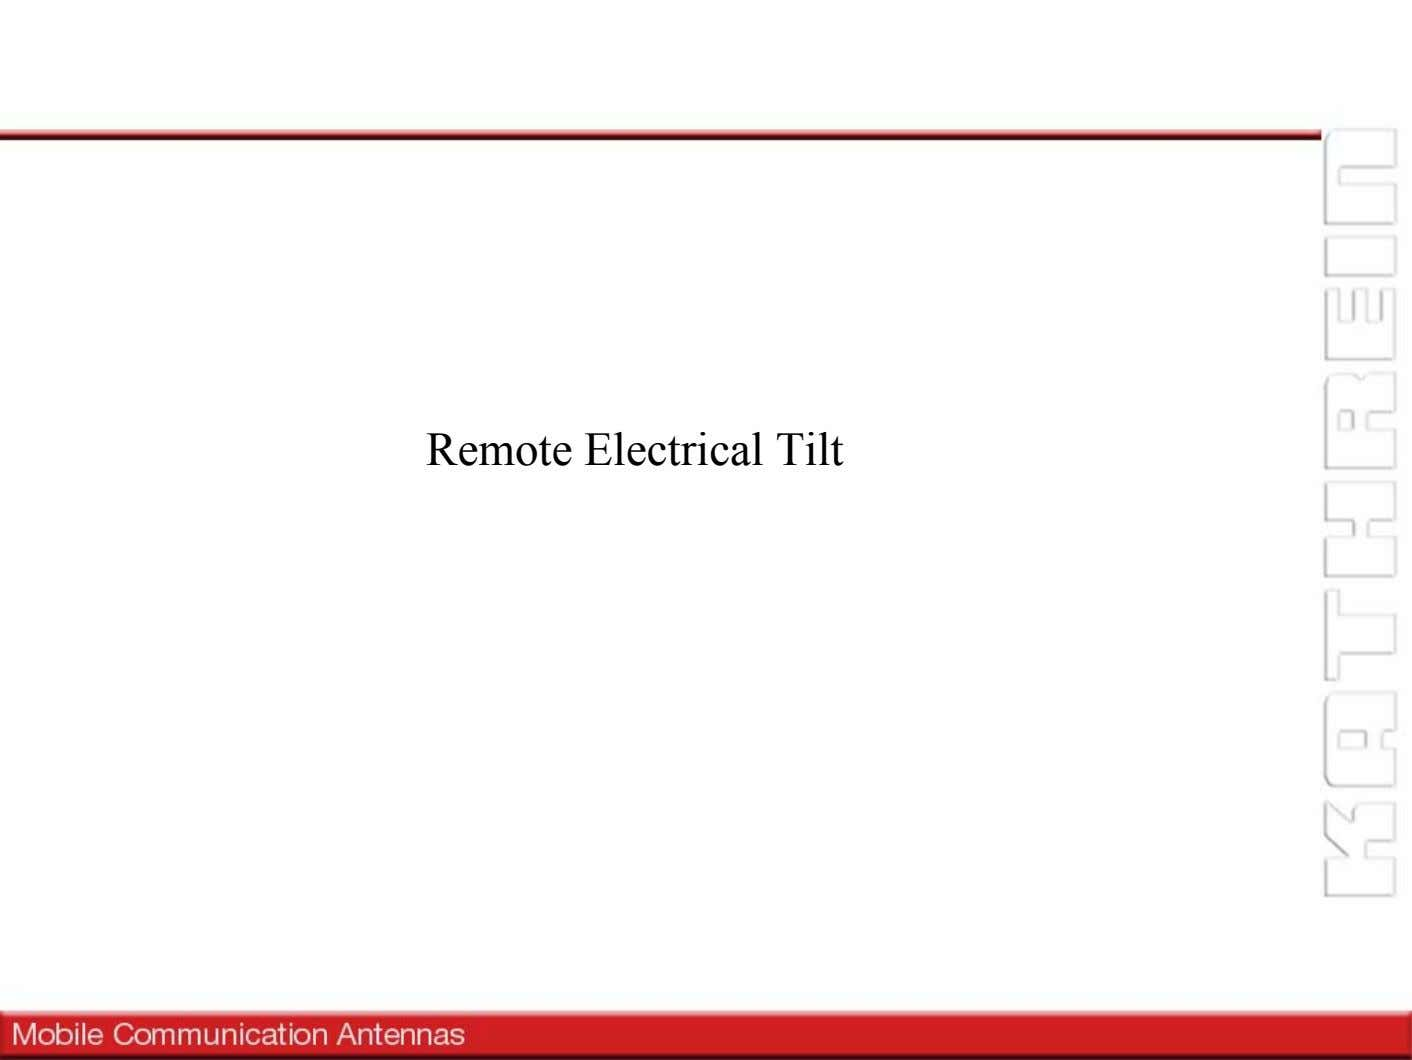 Remote Electrical Tilt